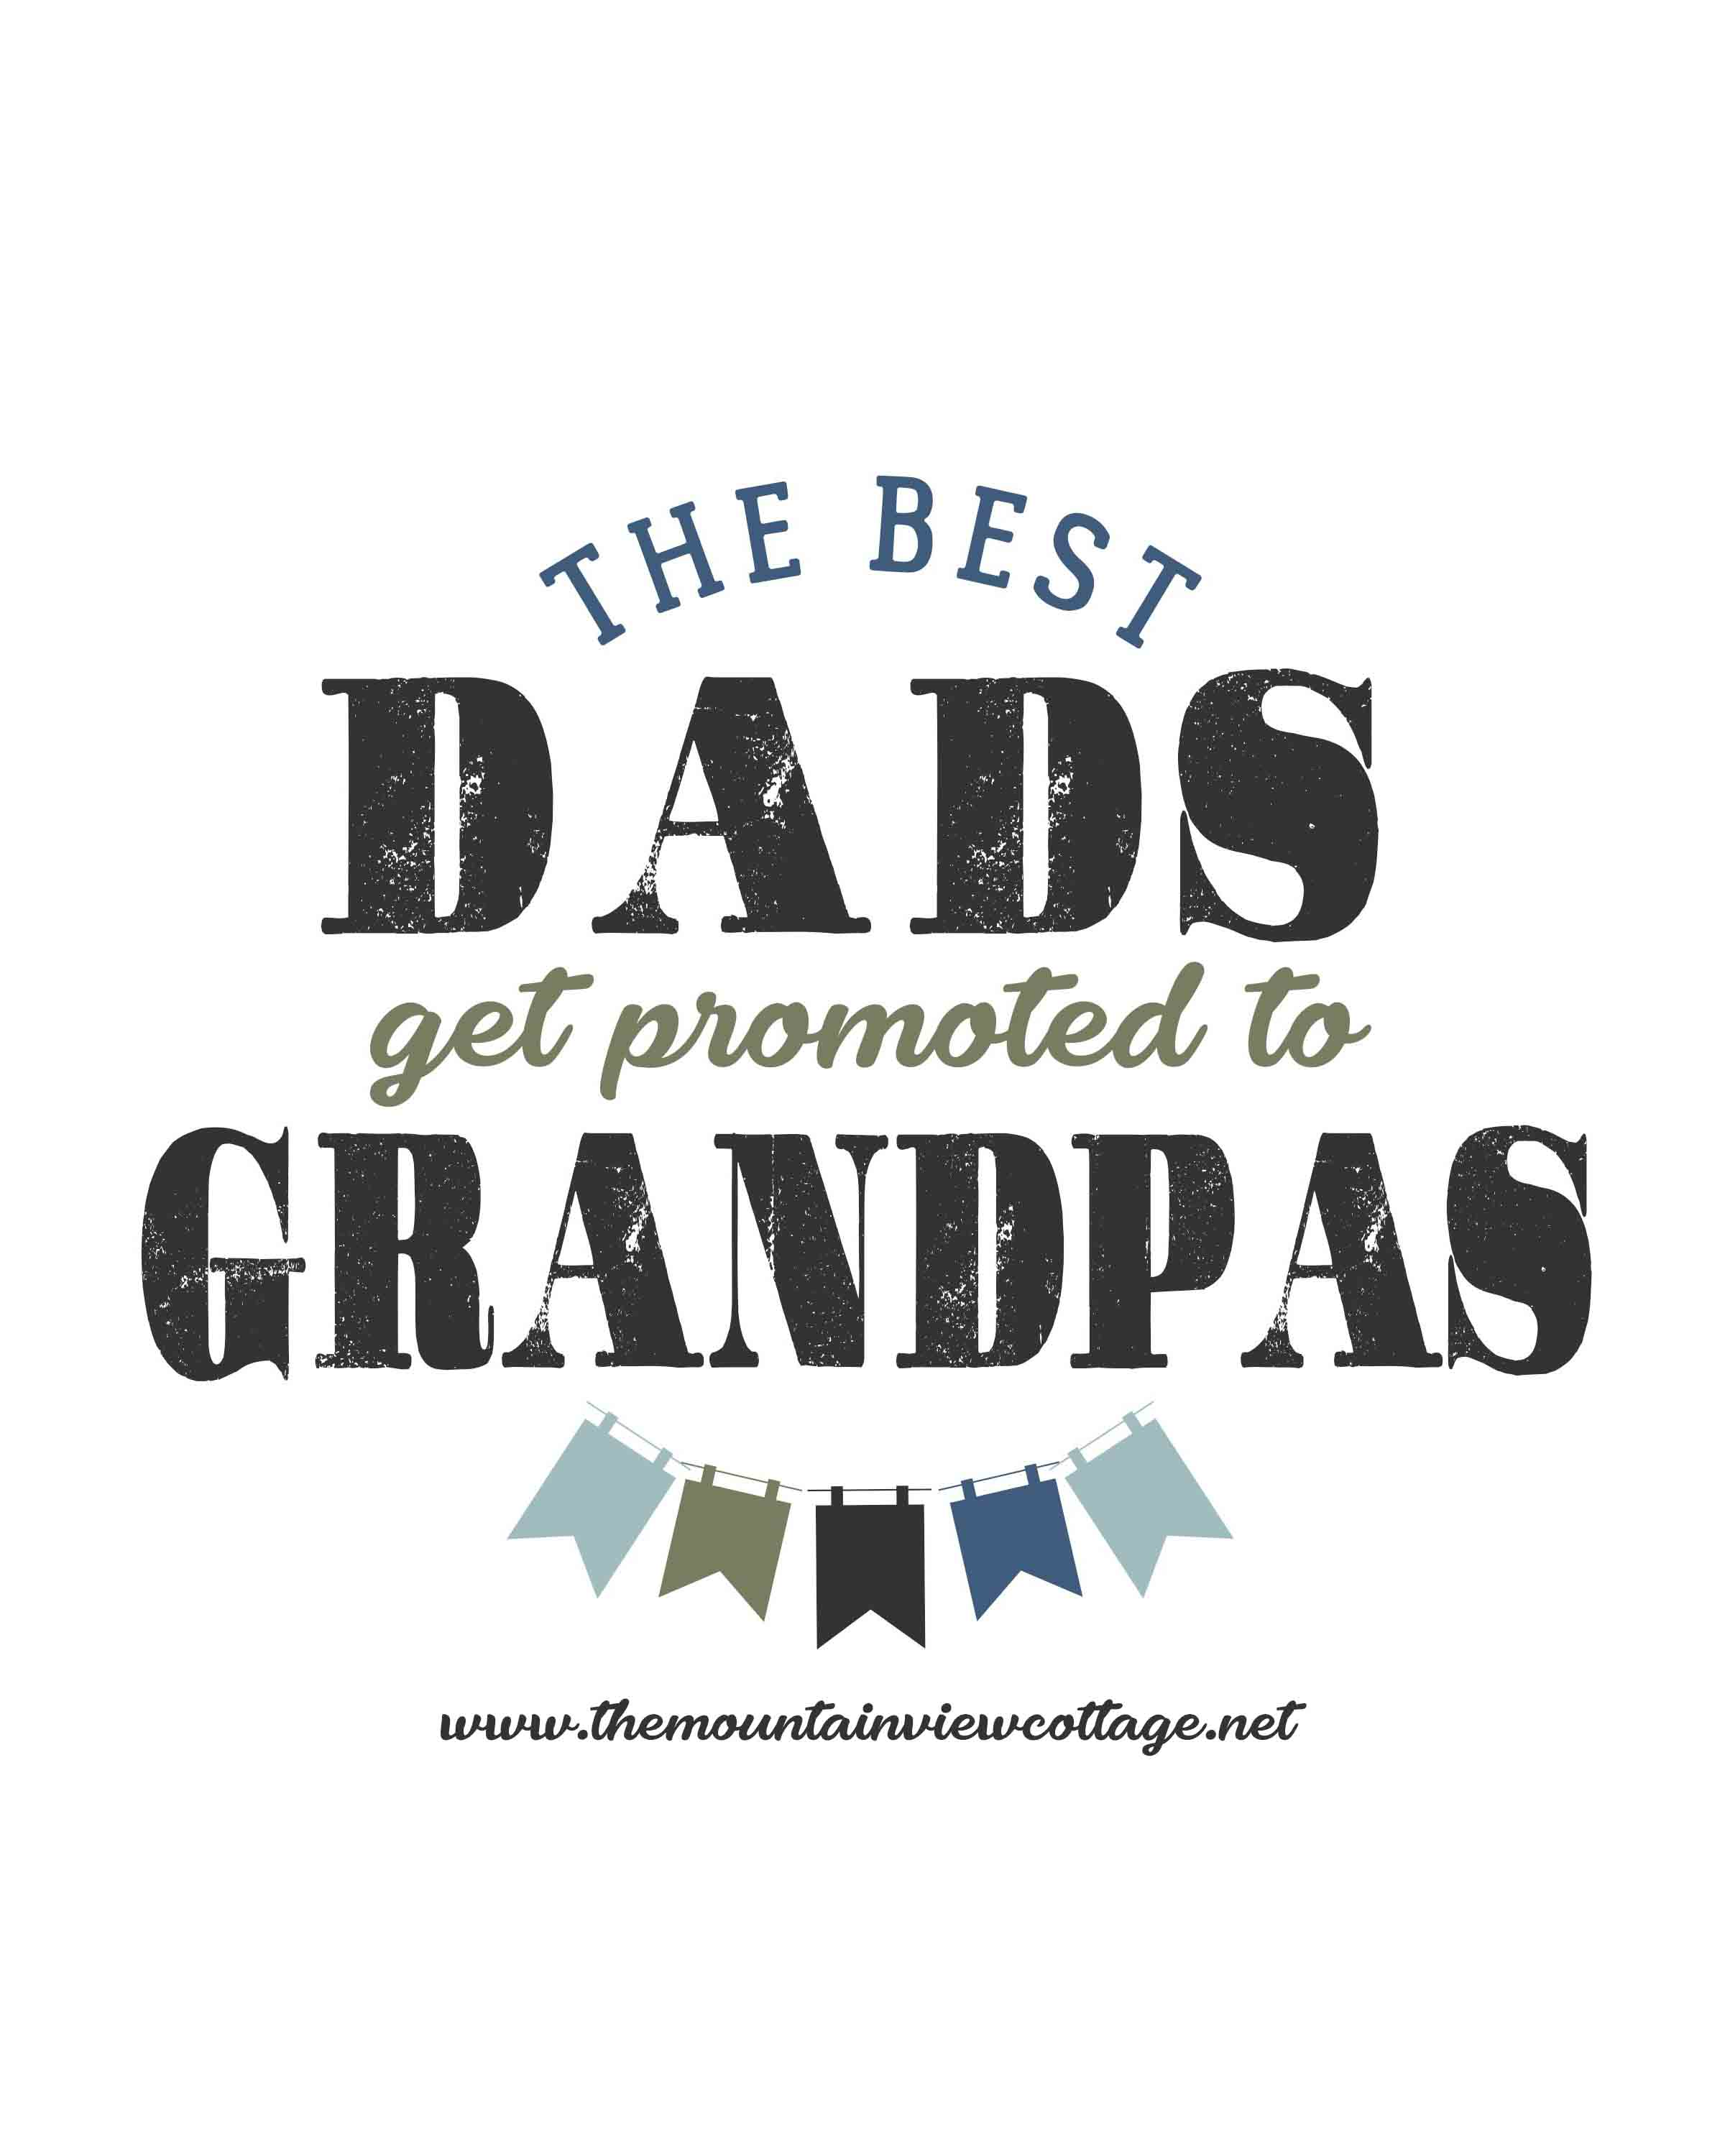 Grandpa Quotes: 25 Dad Quotes To Inspire {With Images}